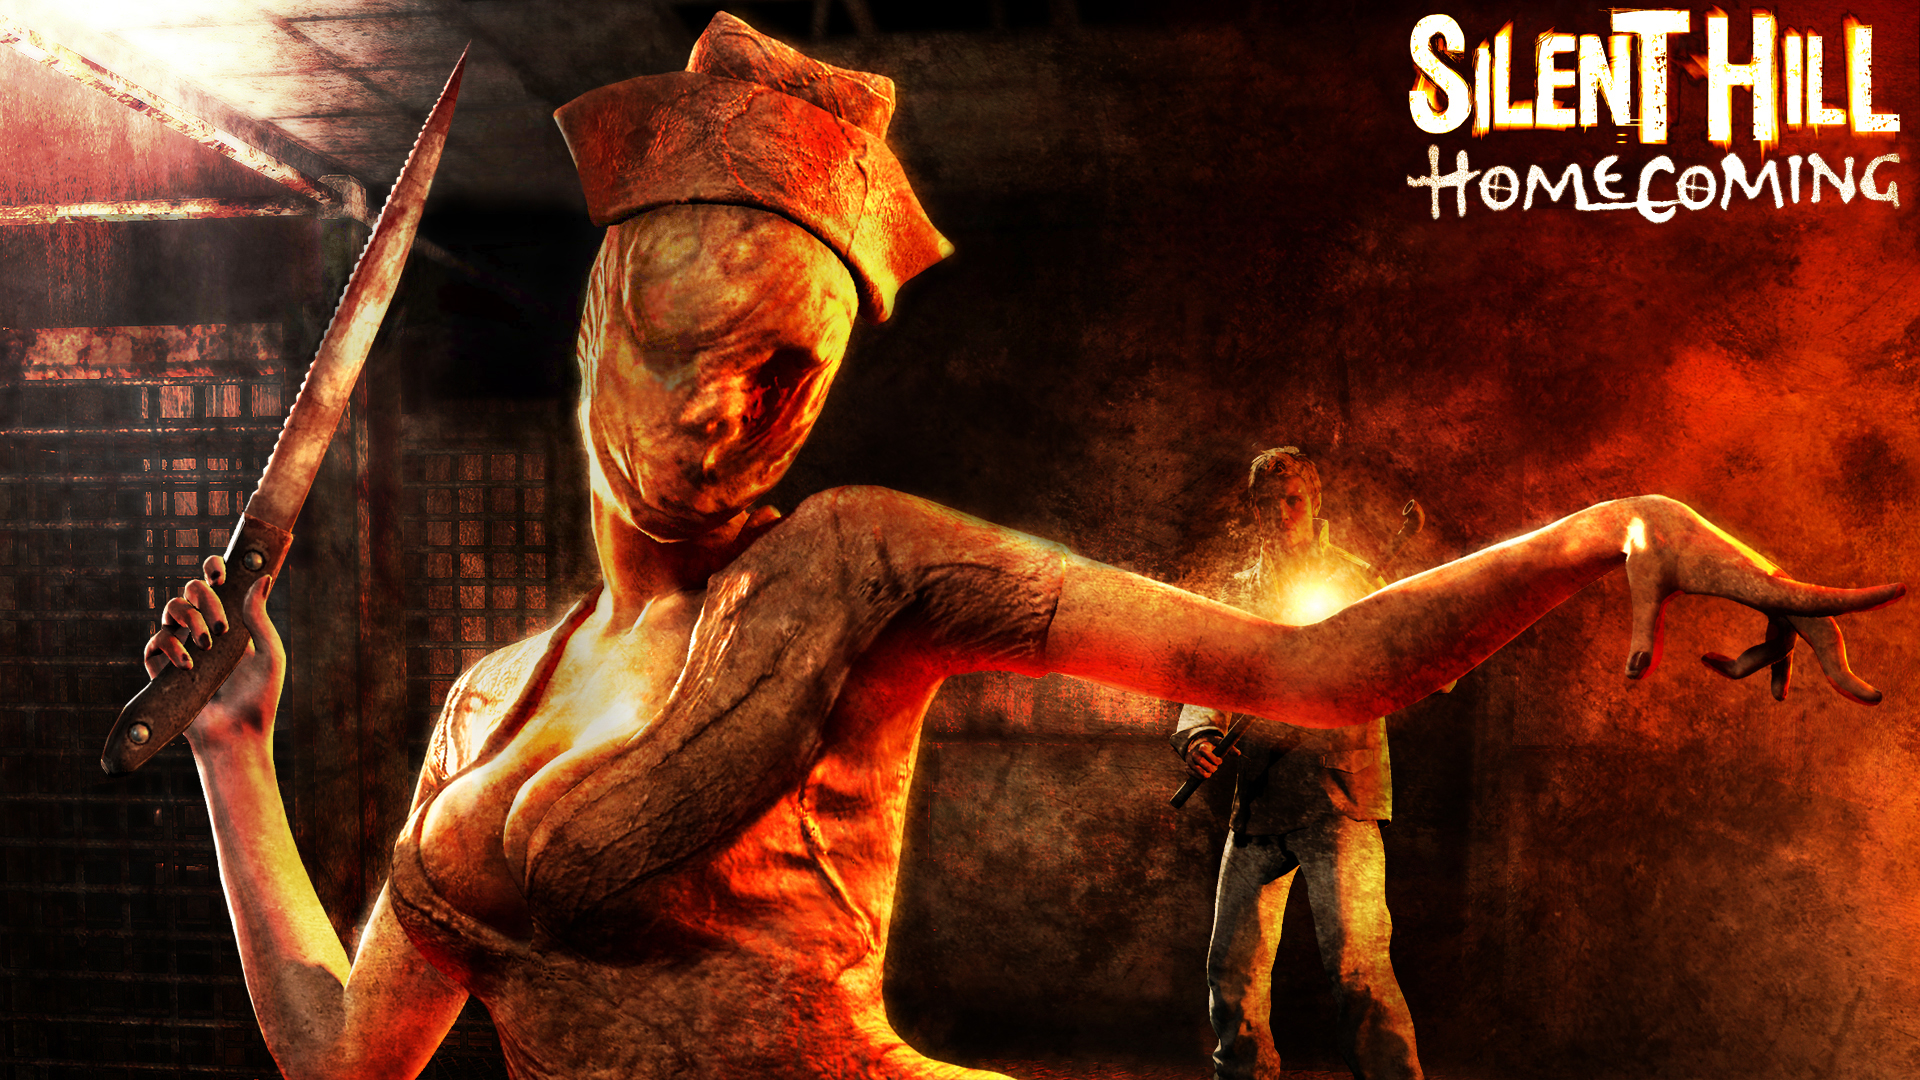 1920x1080 - Silent Hill HD Wallpapers 21